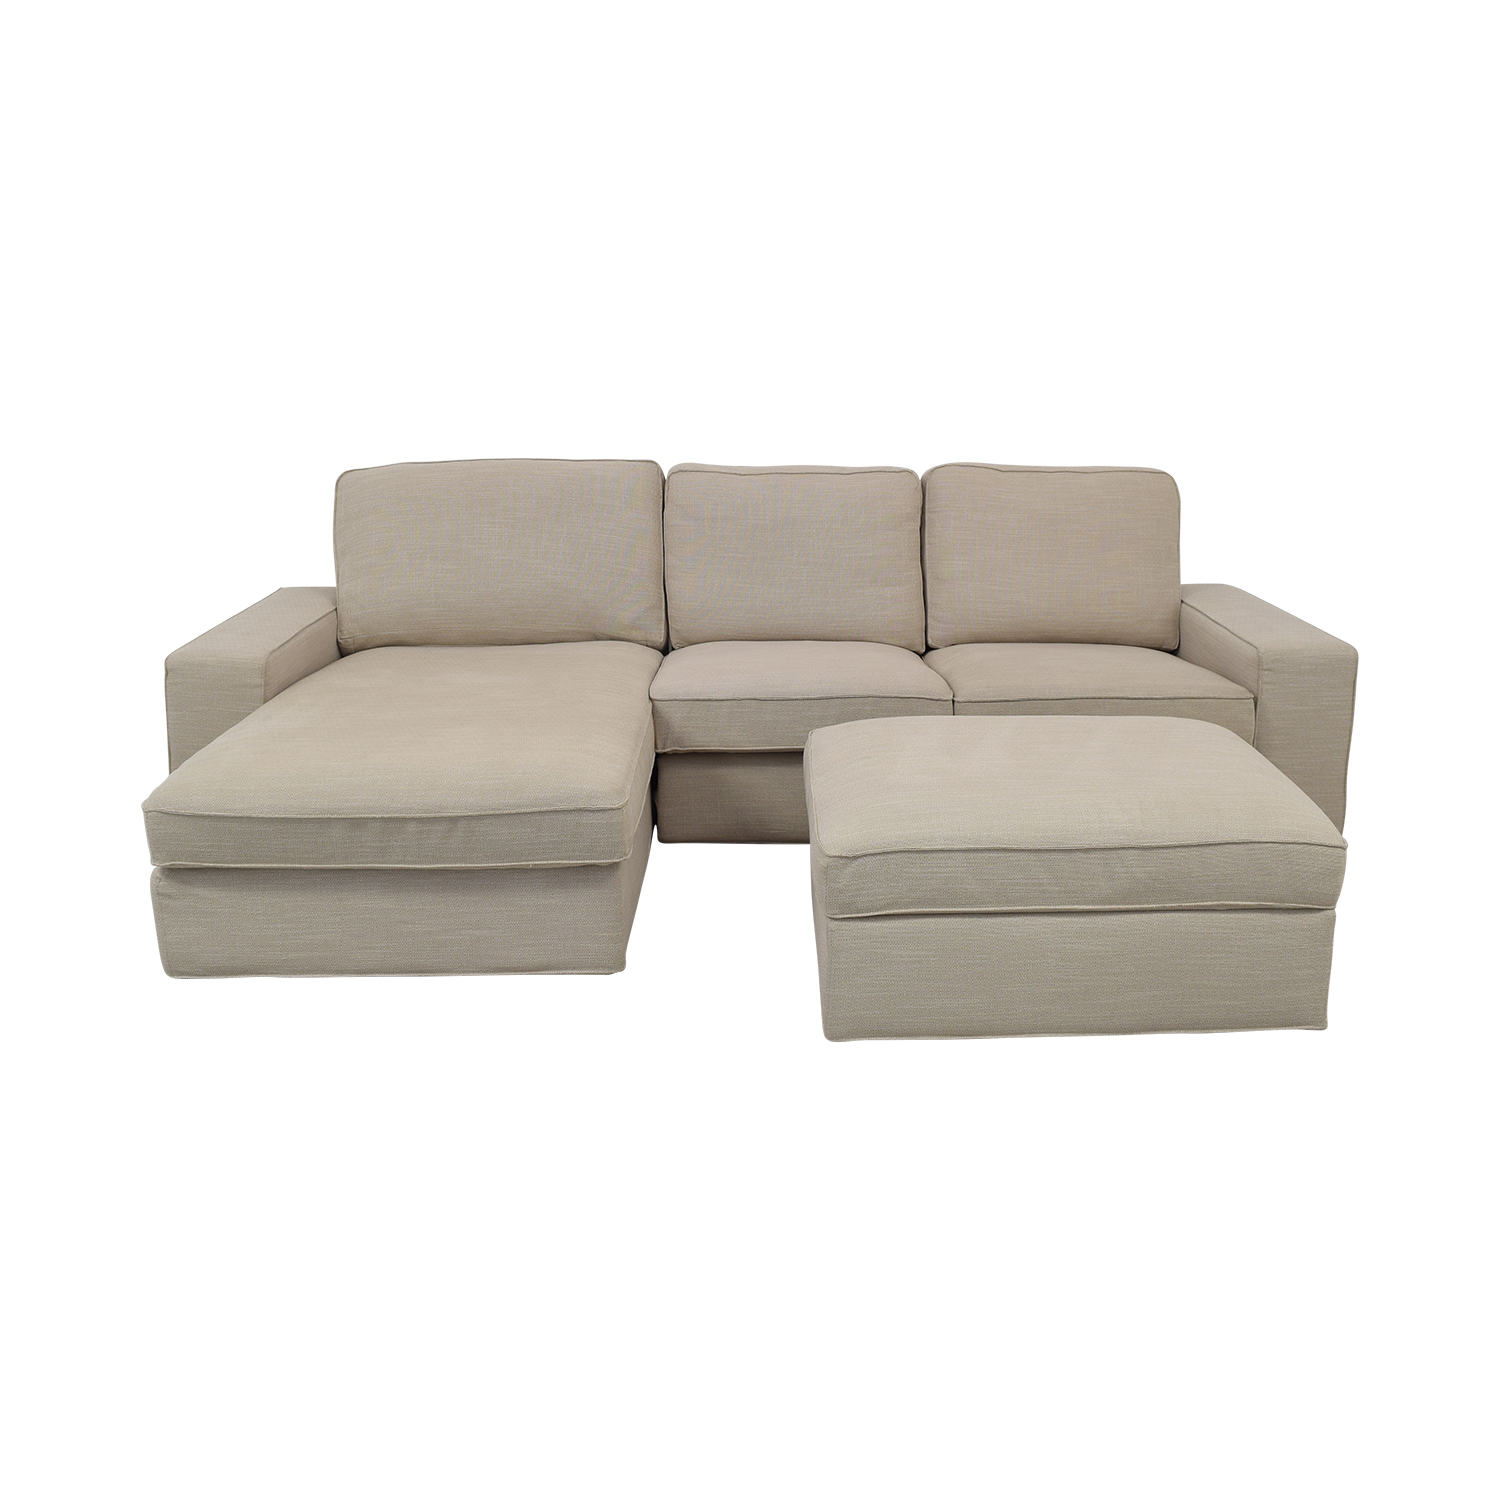 shop IKEA IKEA KIVIK Chaise Sofa with Ottoman online